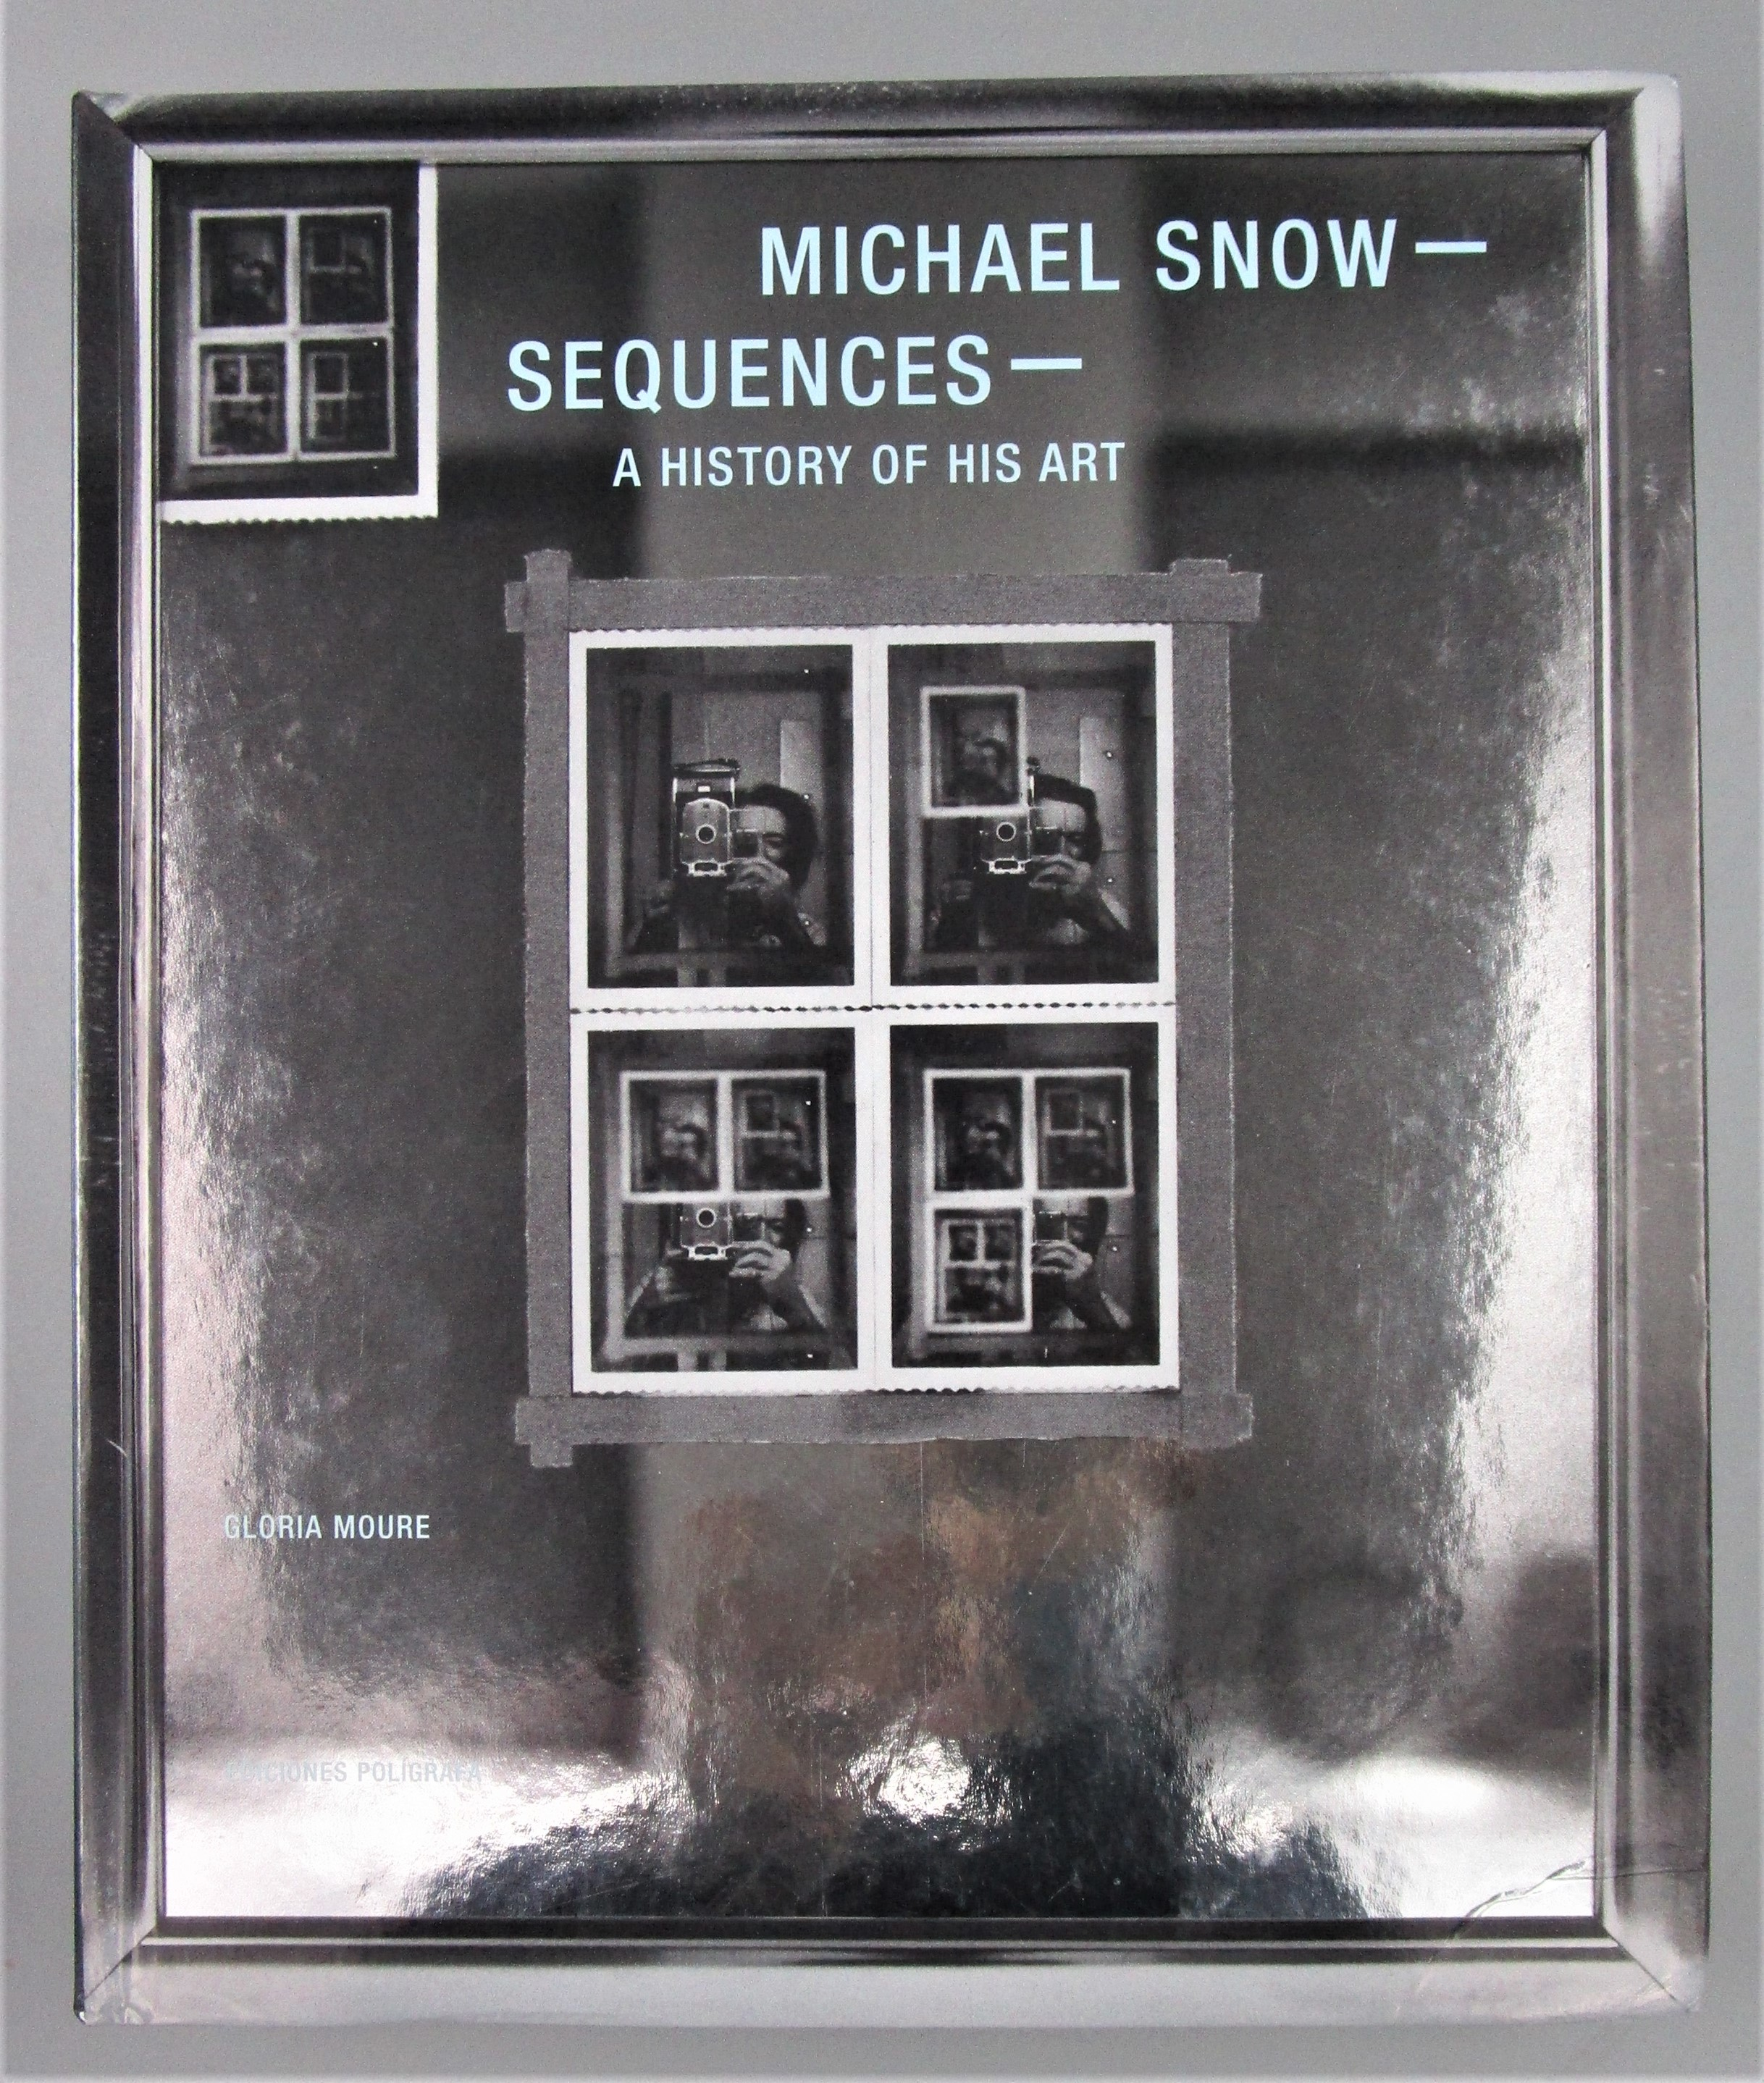 MICHAEL SNOW: SEQUENCES - A HISTORY OF HIS ART, by G. Moure - 2015